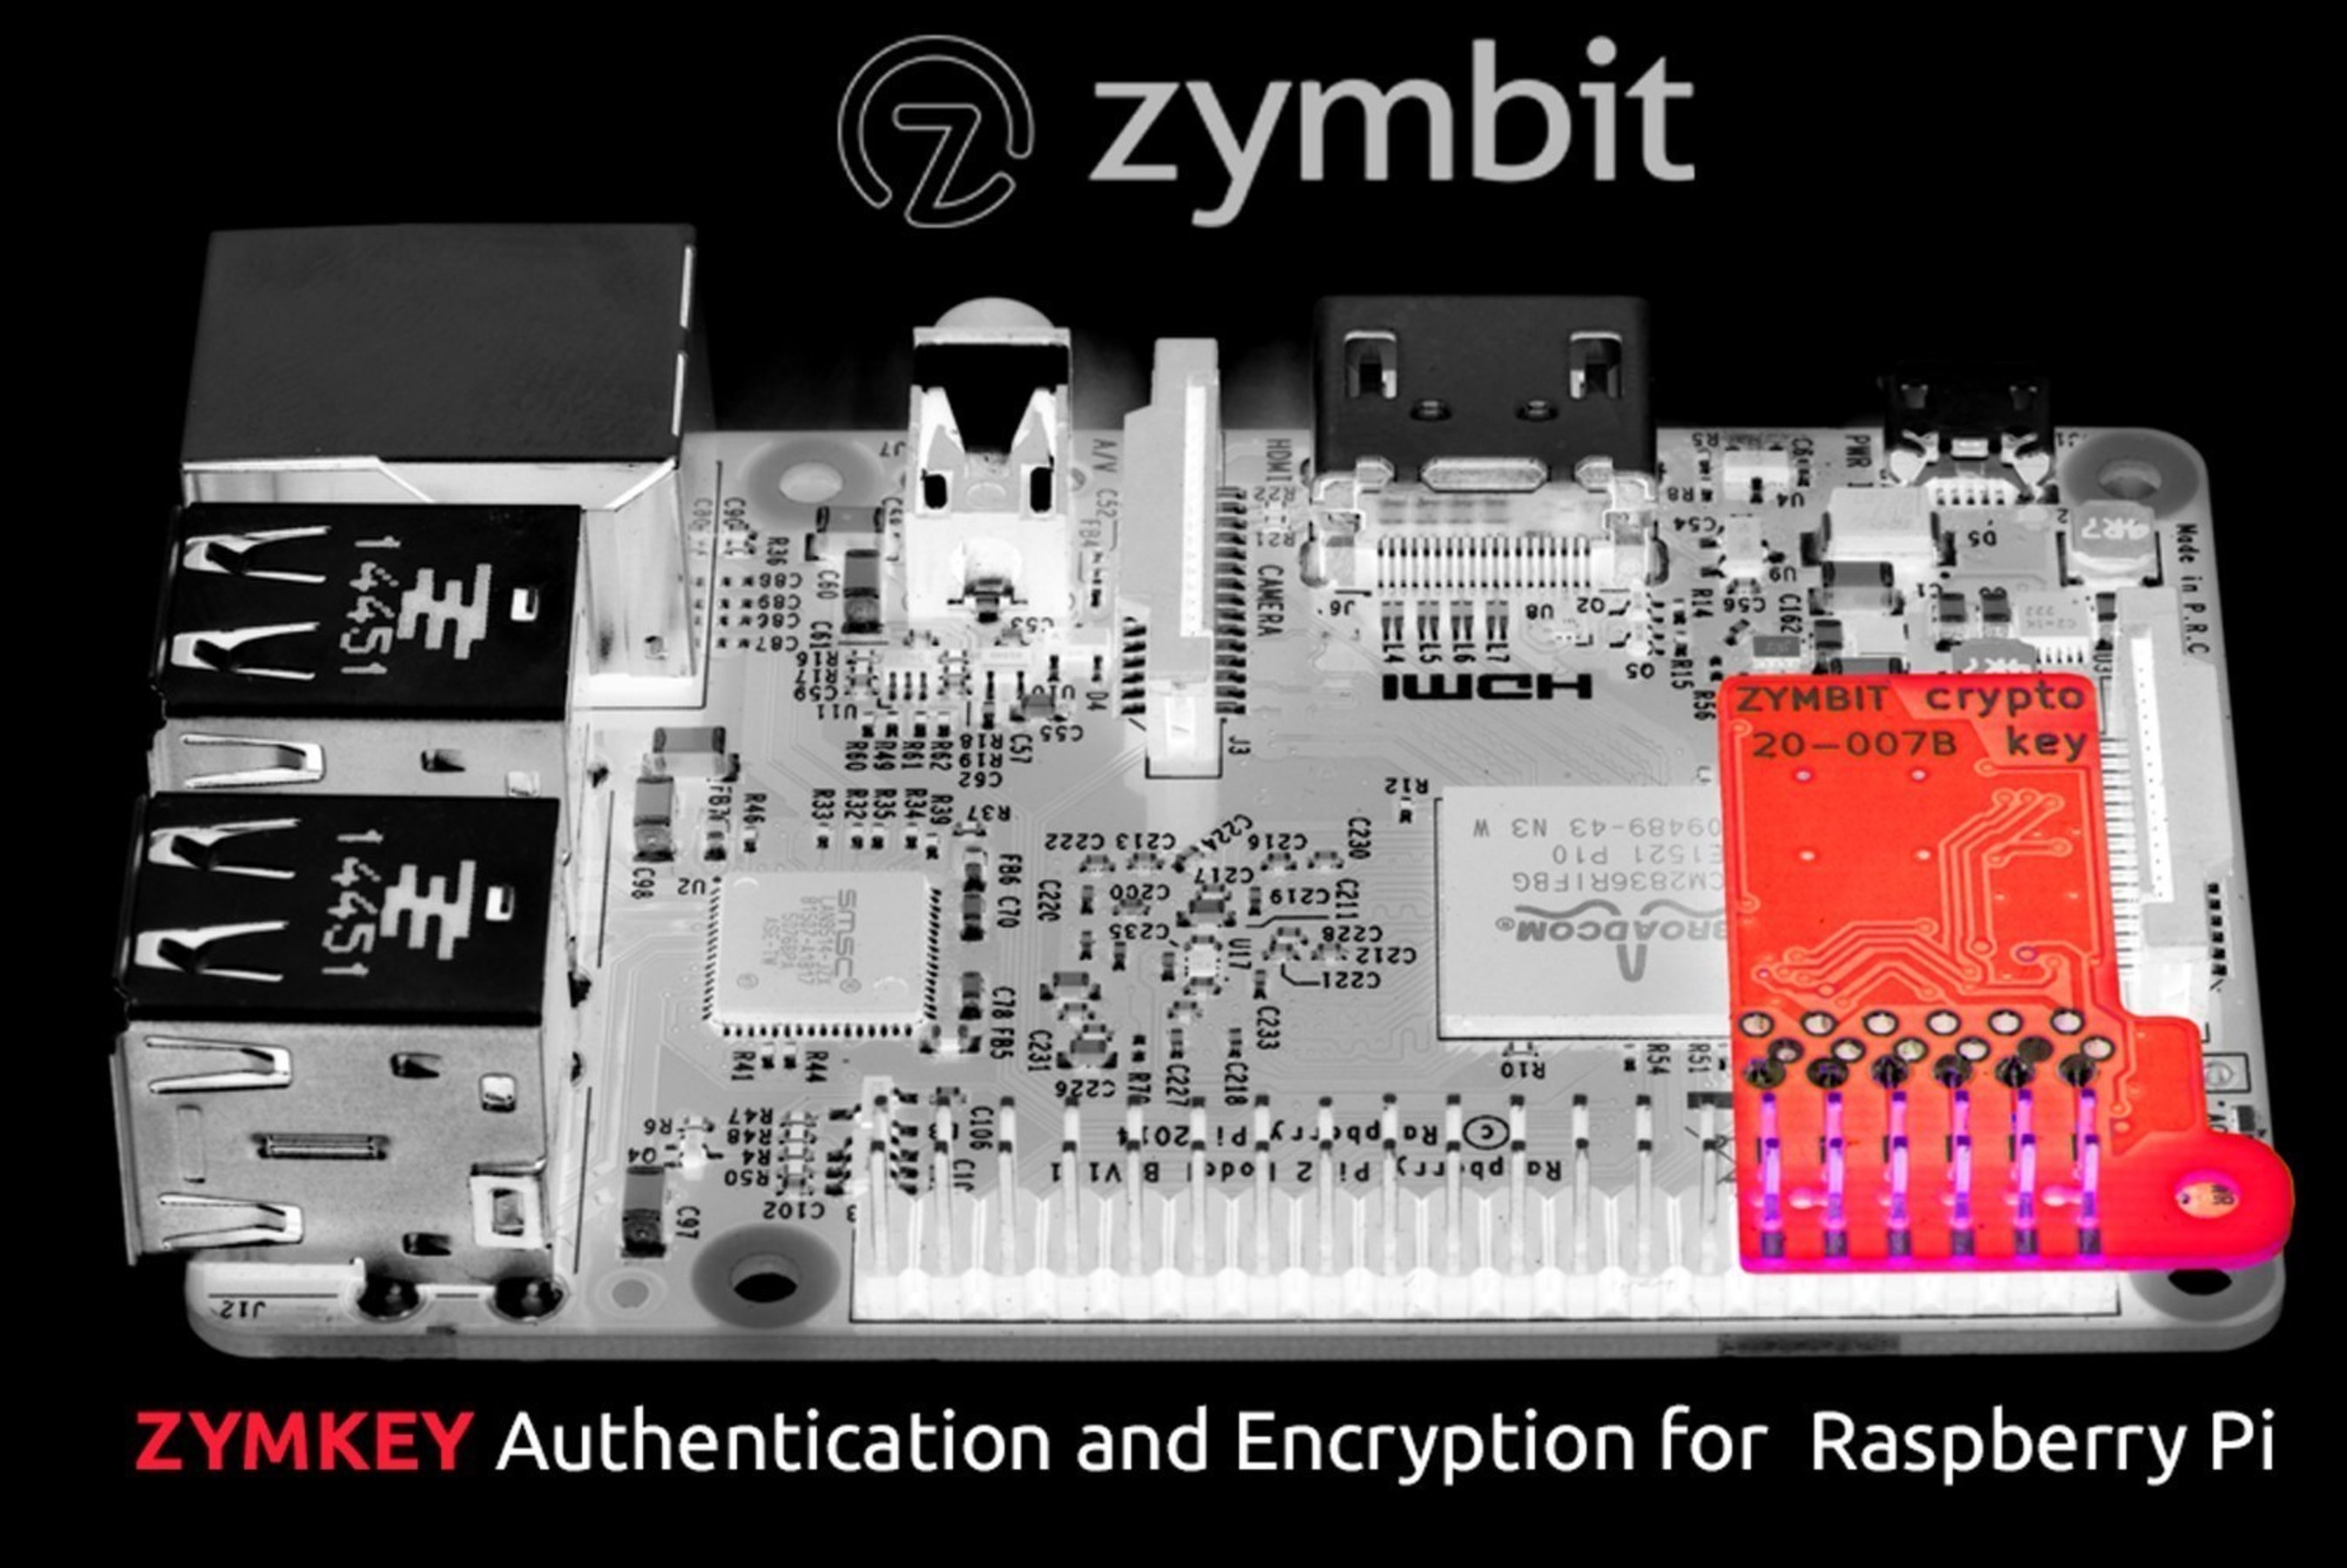 Zymbit Announces ZymKey for Improved Data Security for IoT Devices